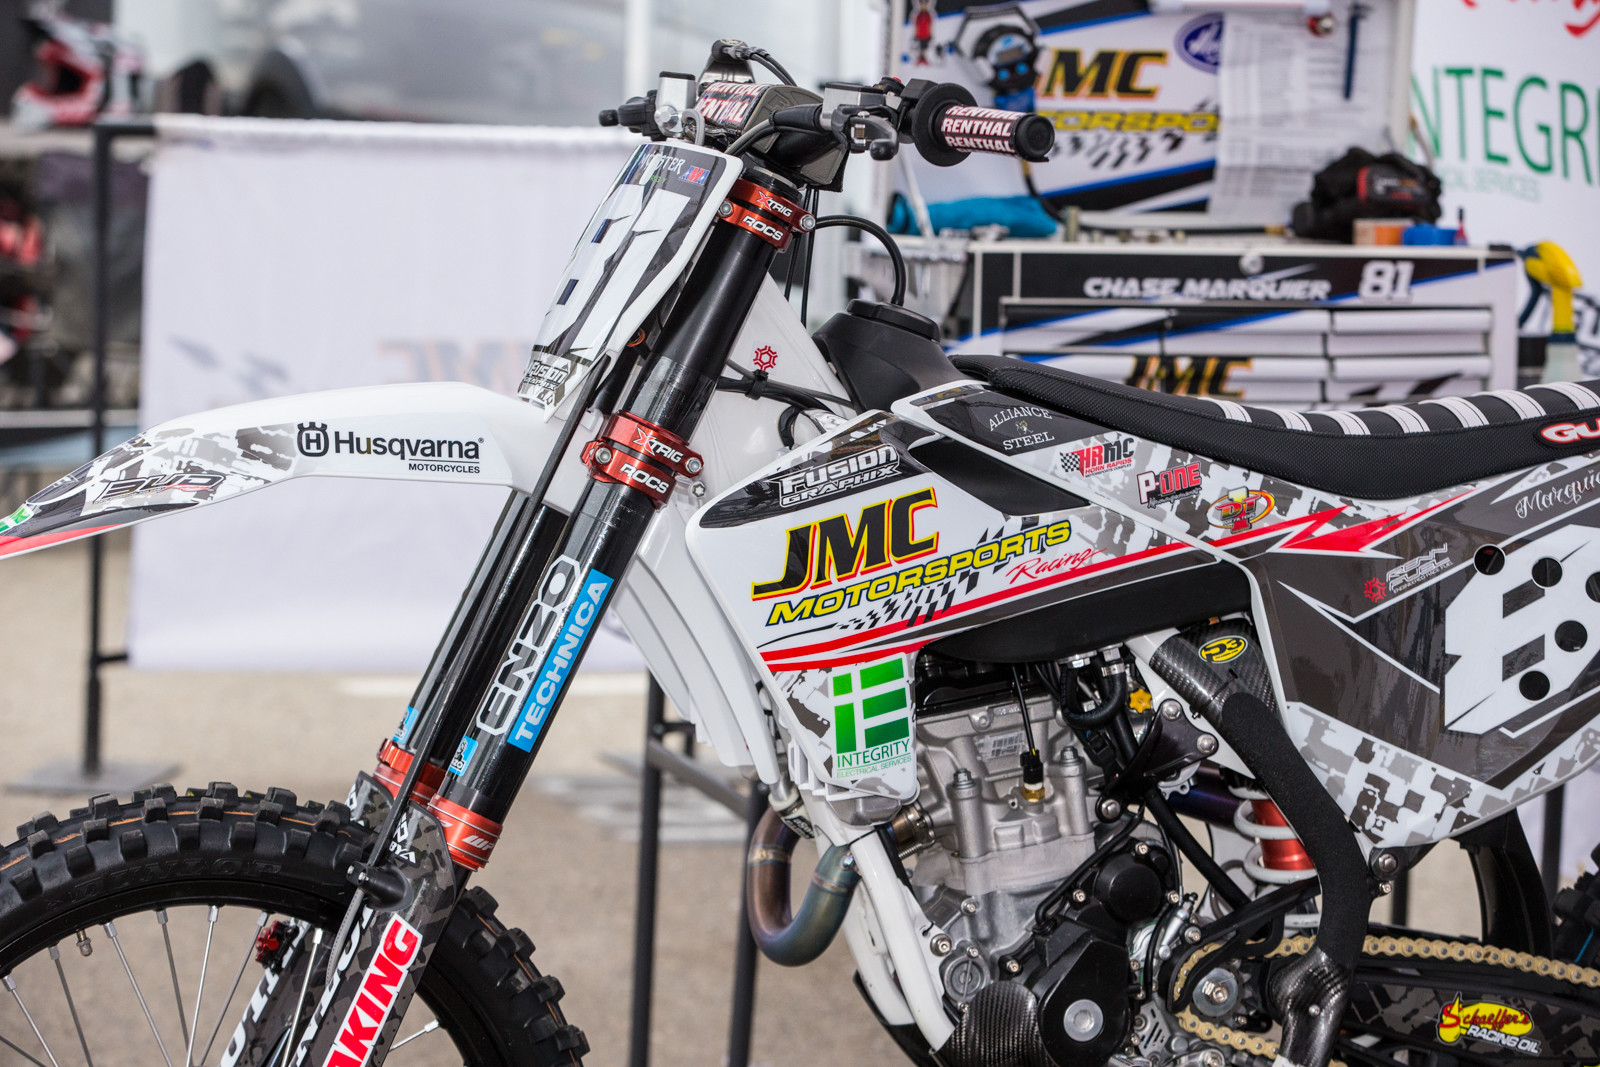 While Chase Marquier's had WP forks. Both are tuned by Enzo racing, so it's cool to see a smaller outfit offering up options to their riders. Big commitment.